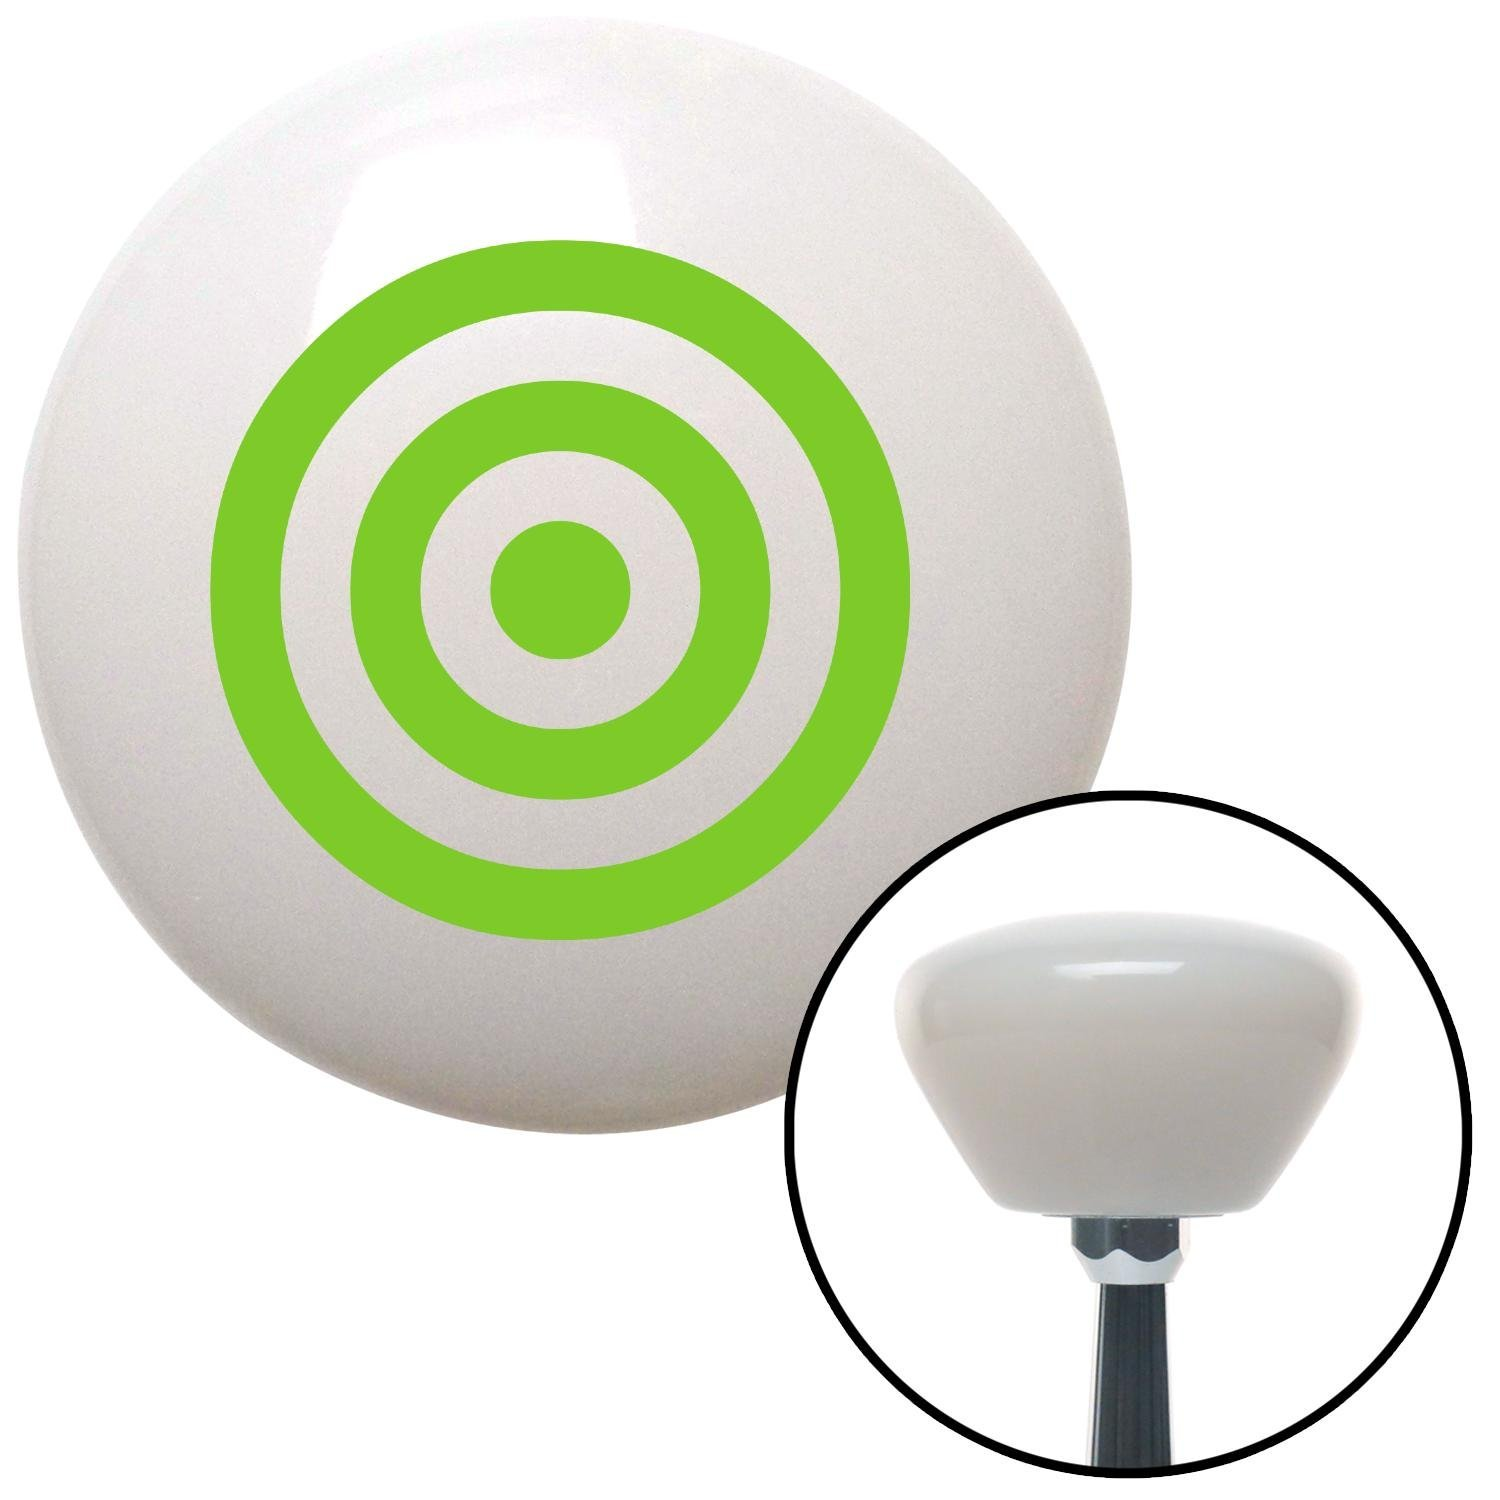 Green Bulls Eye American Shifter 158753 White Retro Shift Knob with M16 x 1.5 Insert